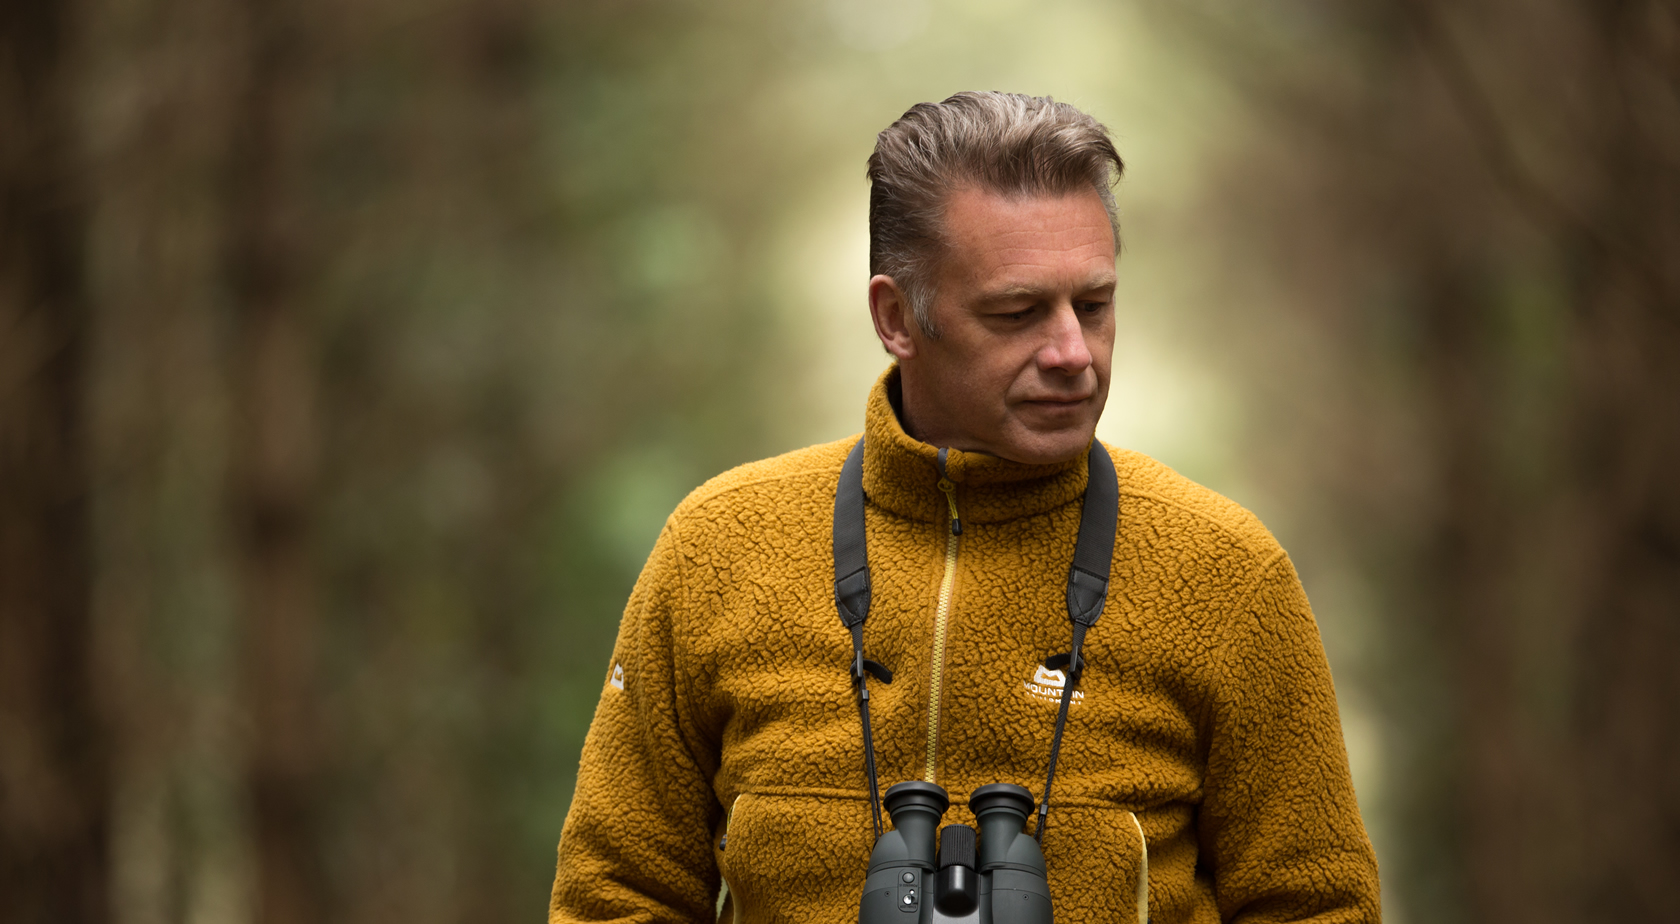 Chris-Packham-1680x924